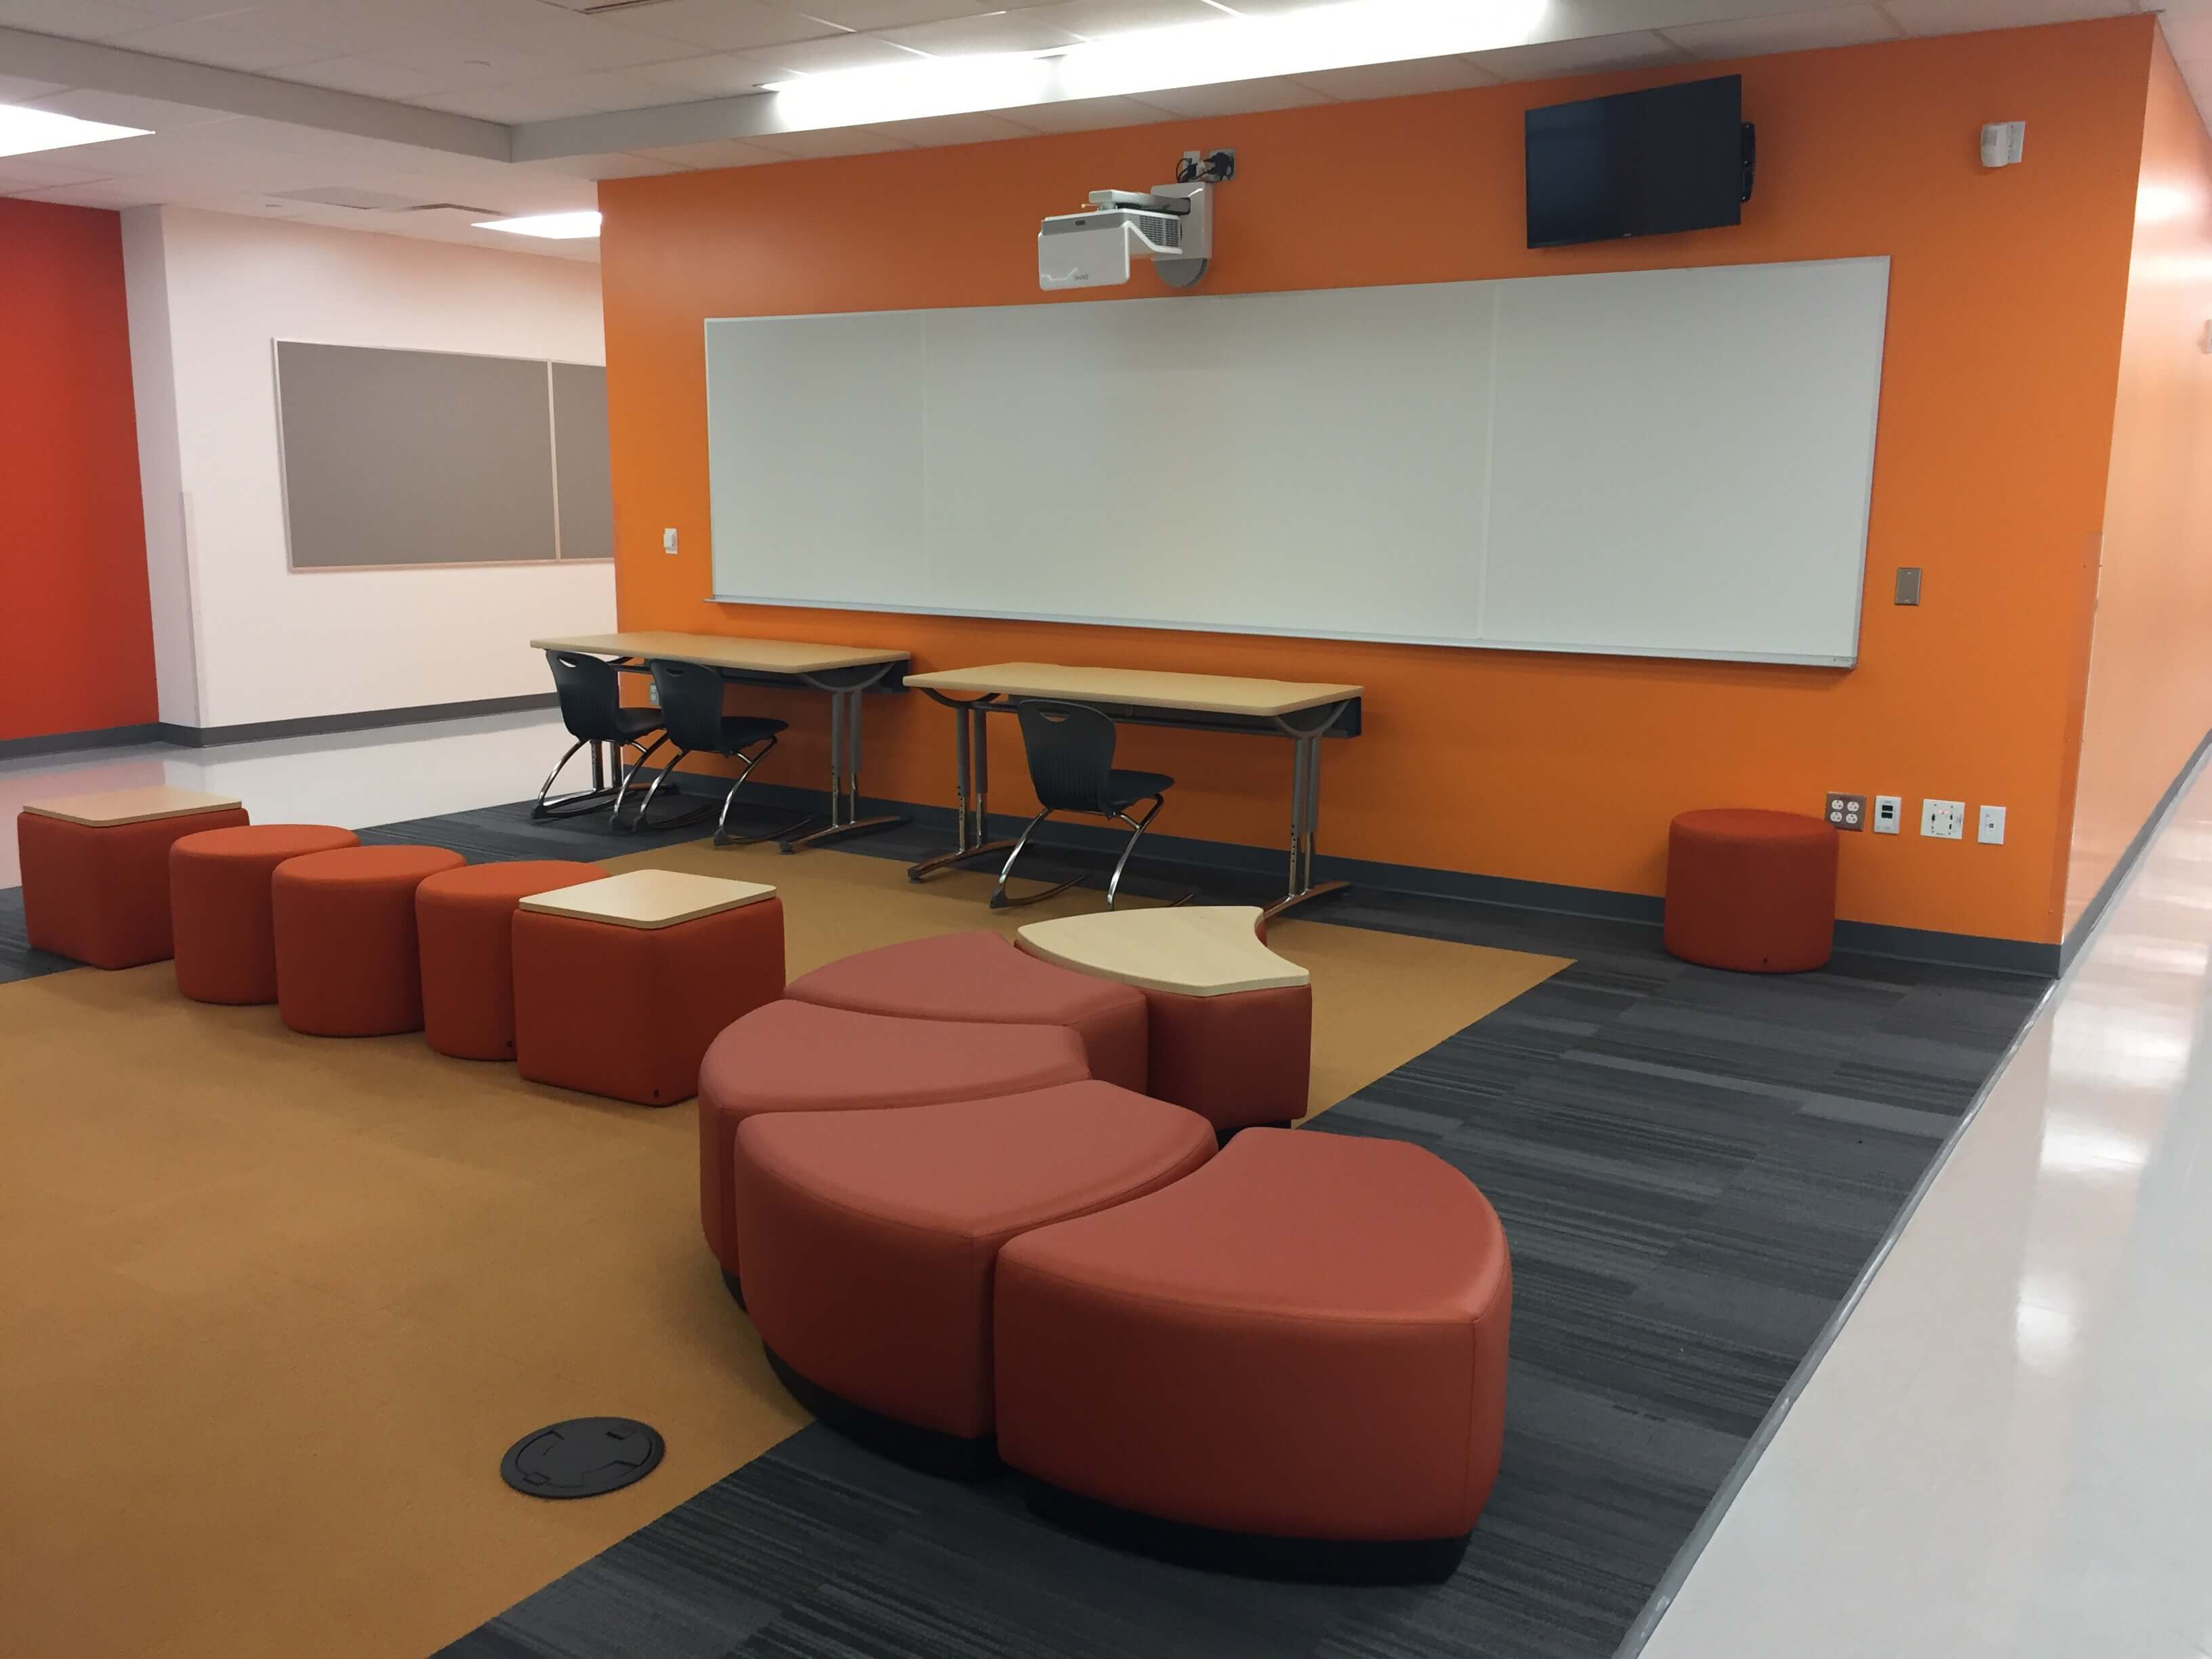 Common area in the new building.